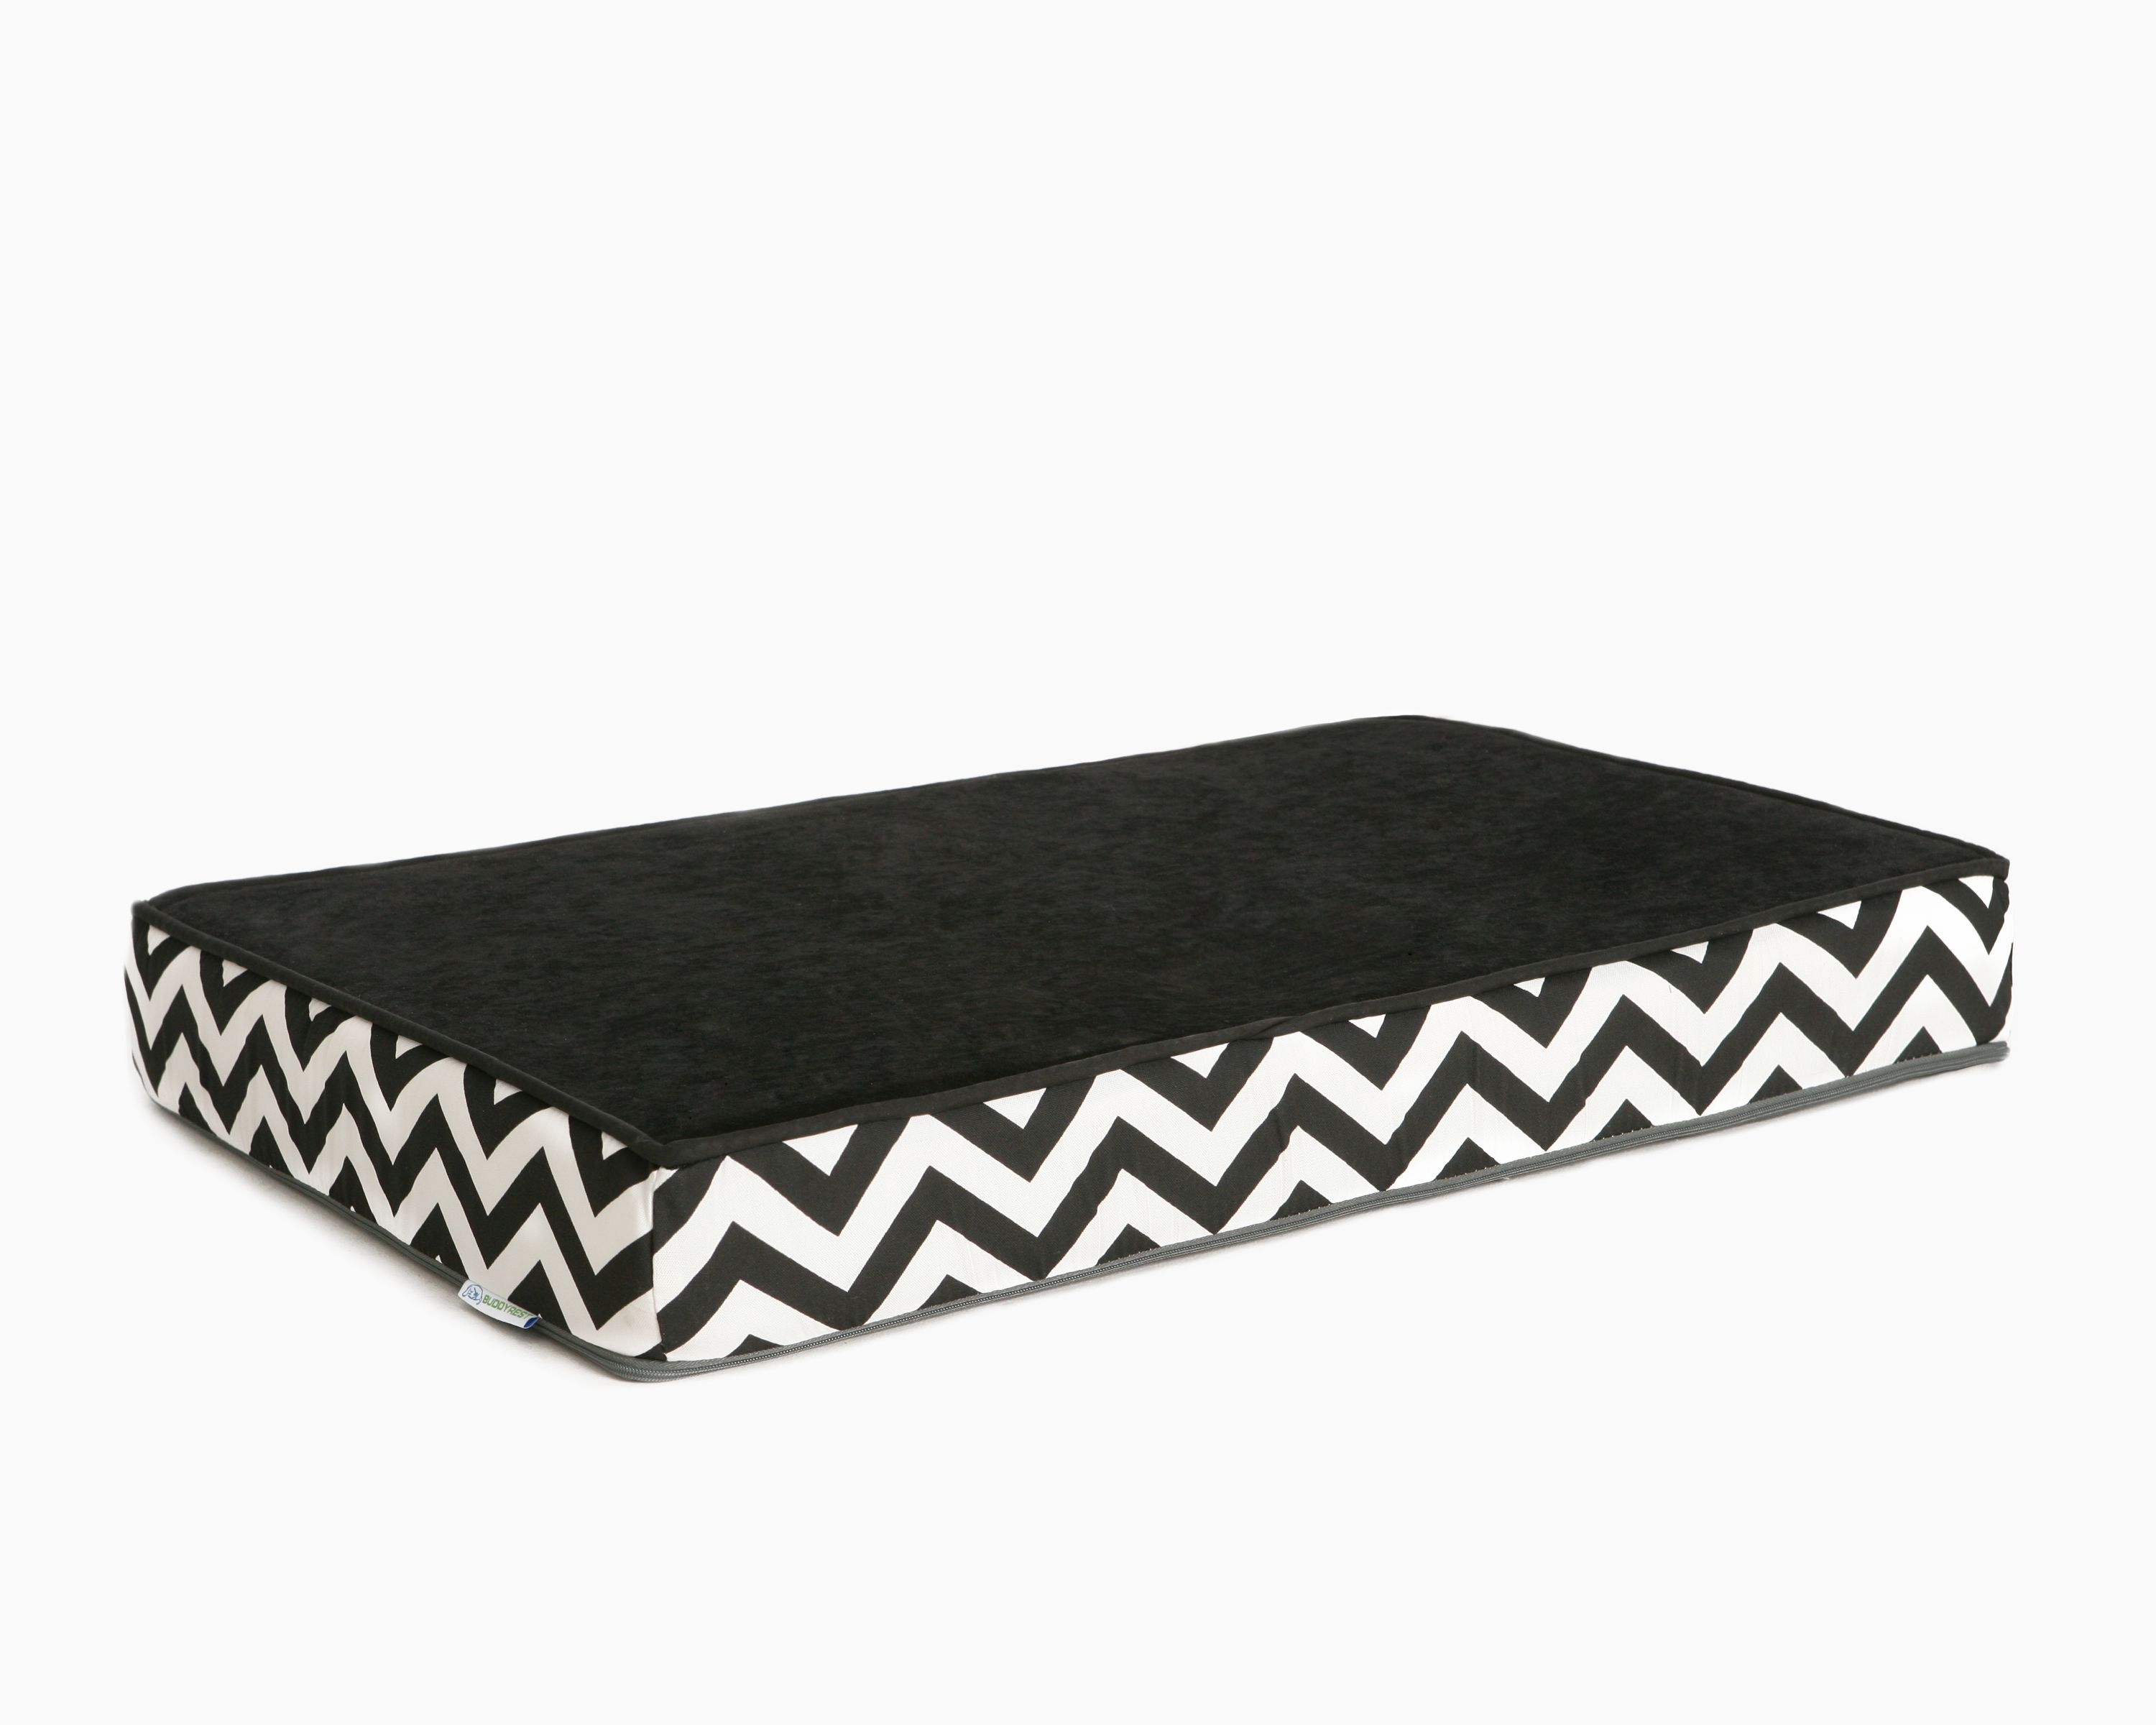 Featuring The Same Type Of Memory Foam Used In Mattresses Our Buddyrest Crown Supreme Orthopedic Pet Bed Can Of Orthopedic Pet Bed Memory Foam Dog Bed Pet Bed